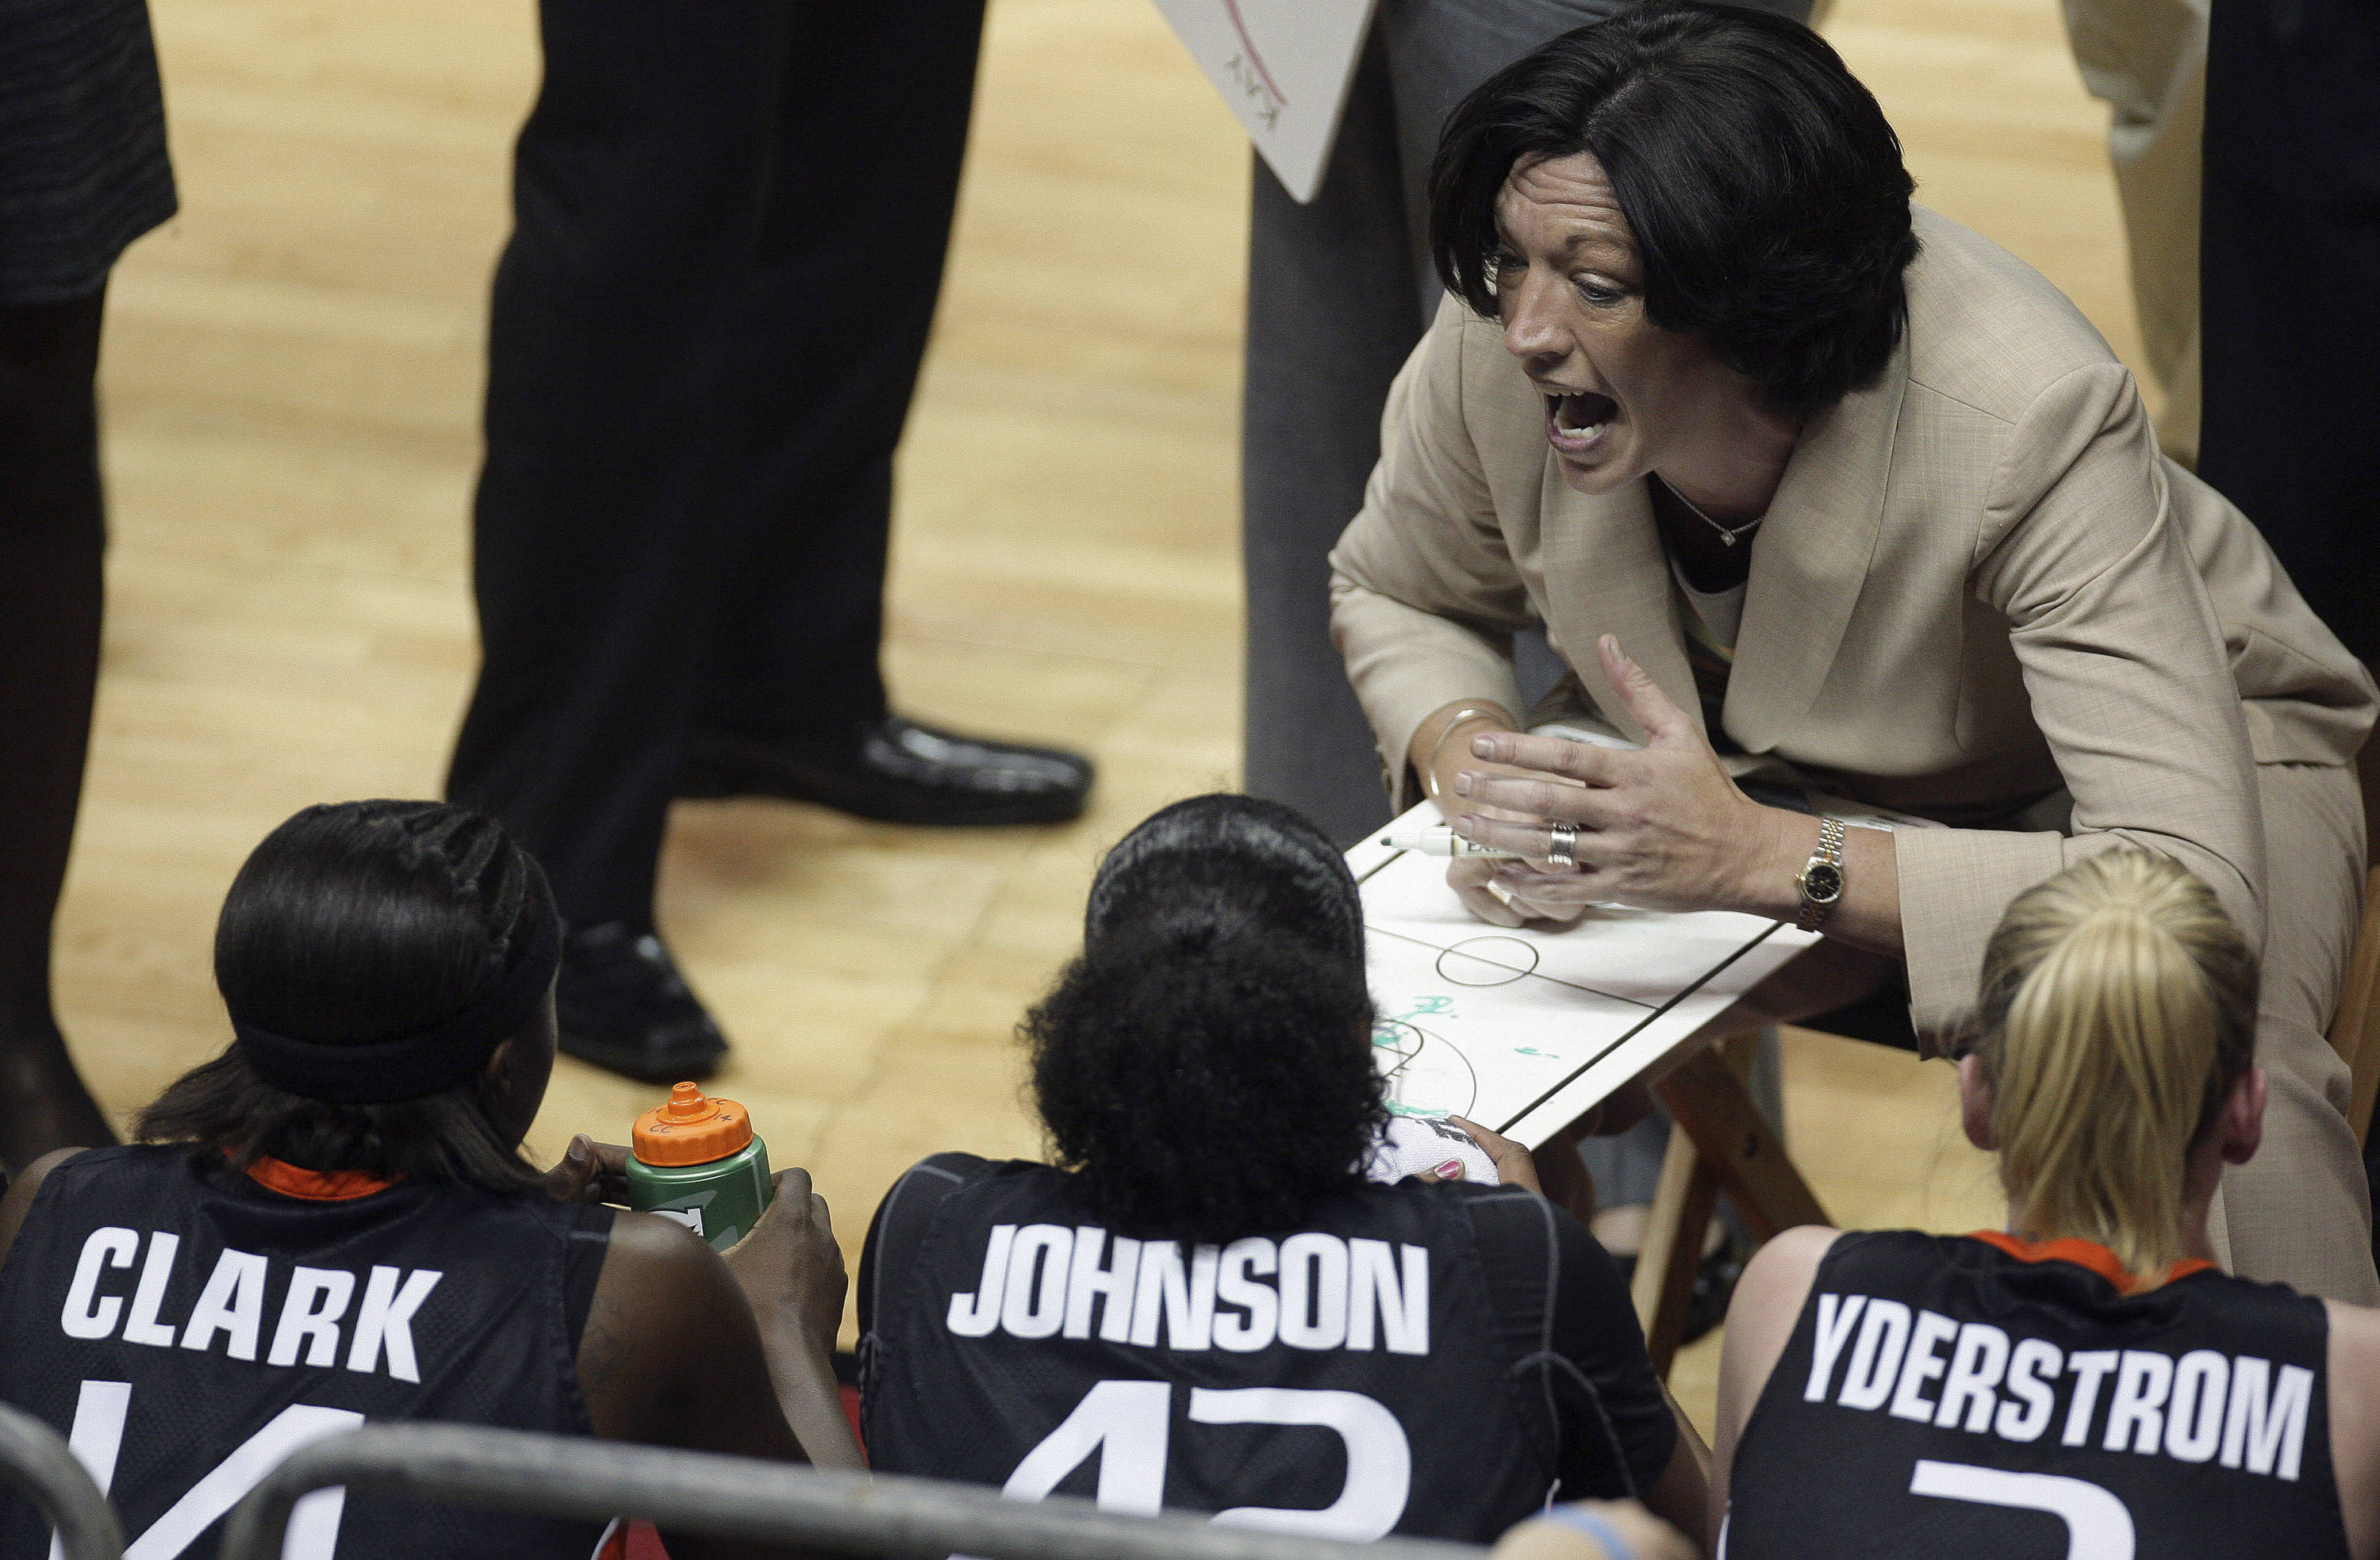 Miami coach Katie Meier, top right, talks to her team during a first-half timeout during an NCAA college basketball game against Florida State, Thursday, Feb. 25, 2010, in Tallahassee, Fla. (AP Photo/Phil Coale)